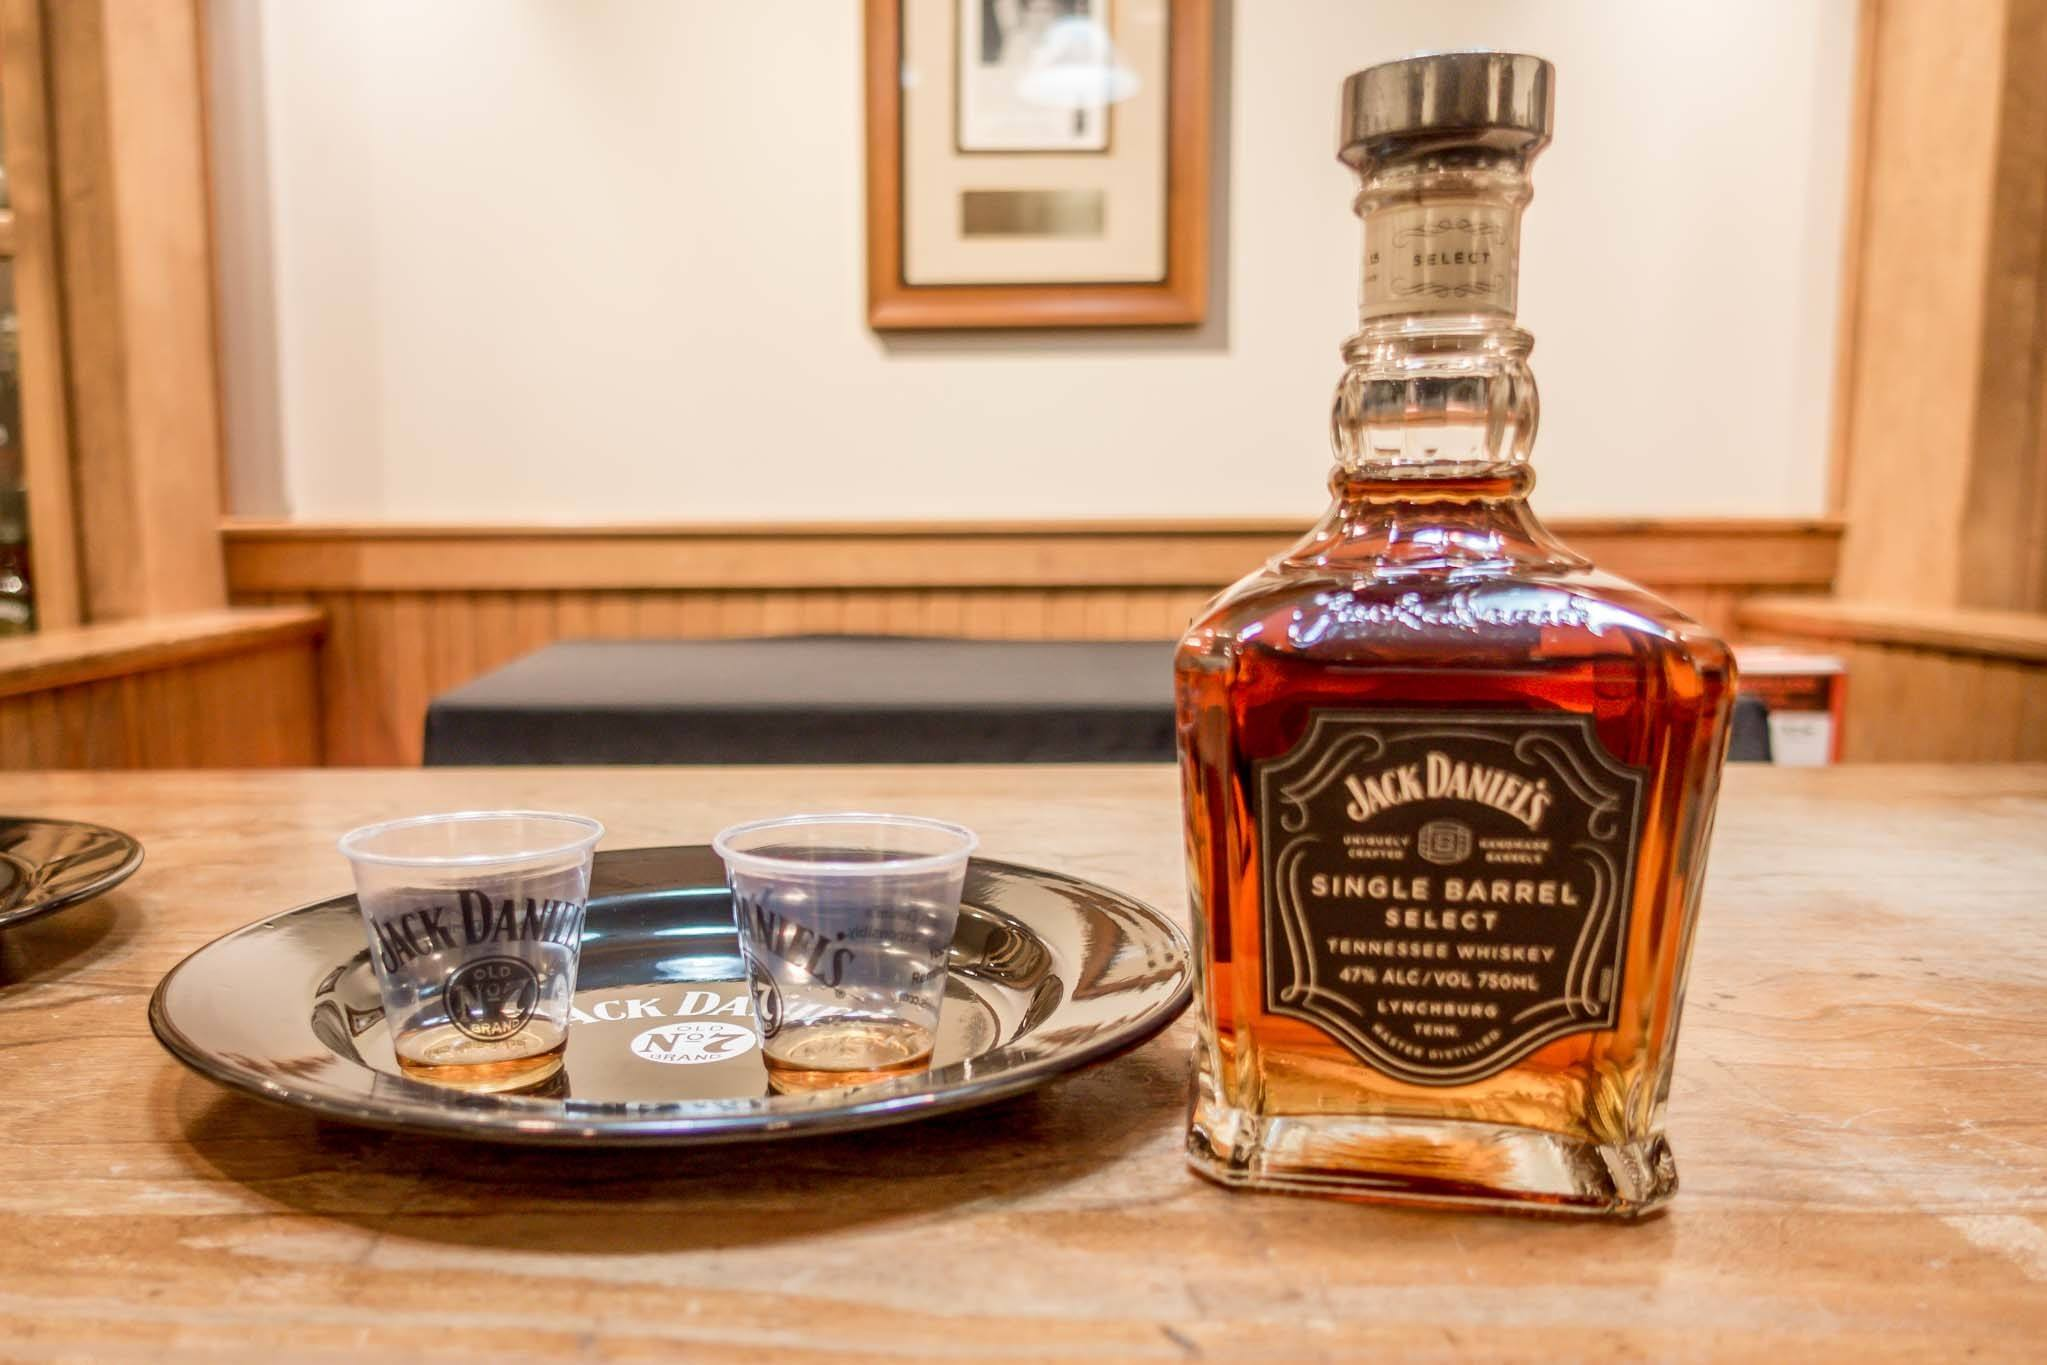 Single Barrel whiskey is the high-end offering from Jack Daniel's, and you can try is on a Jack Daniels tasting tour